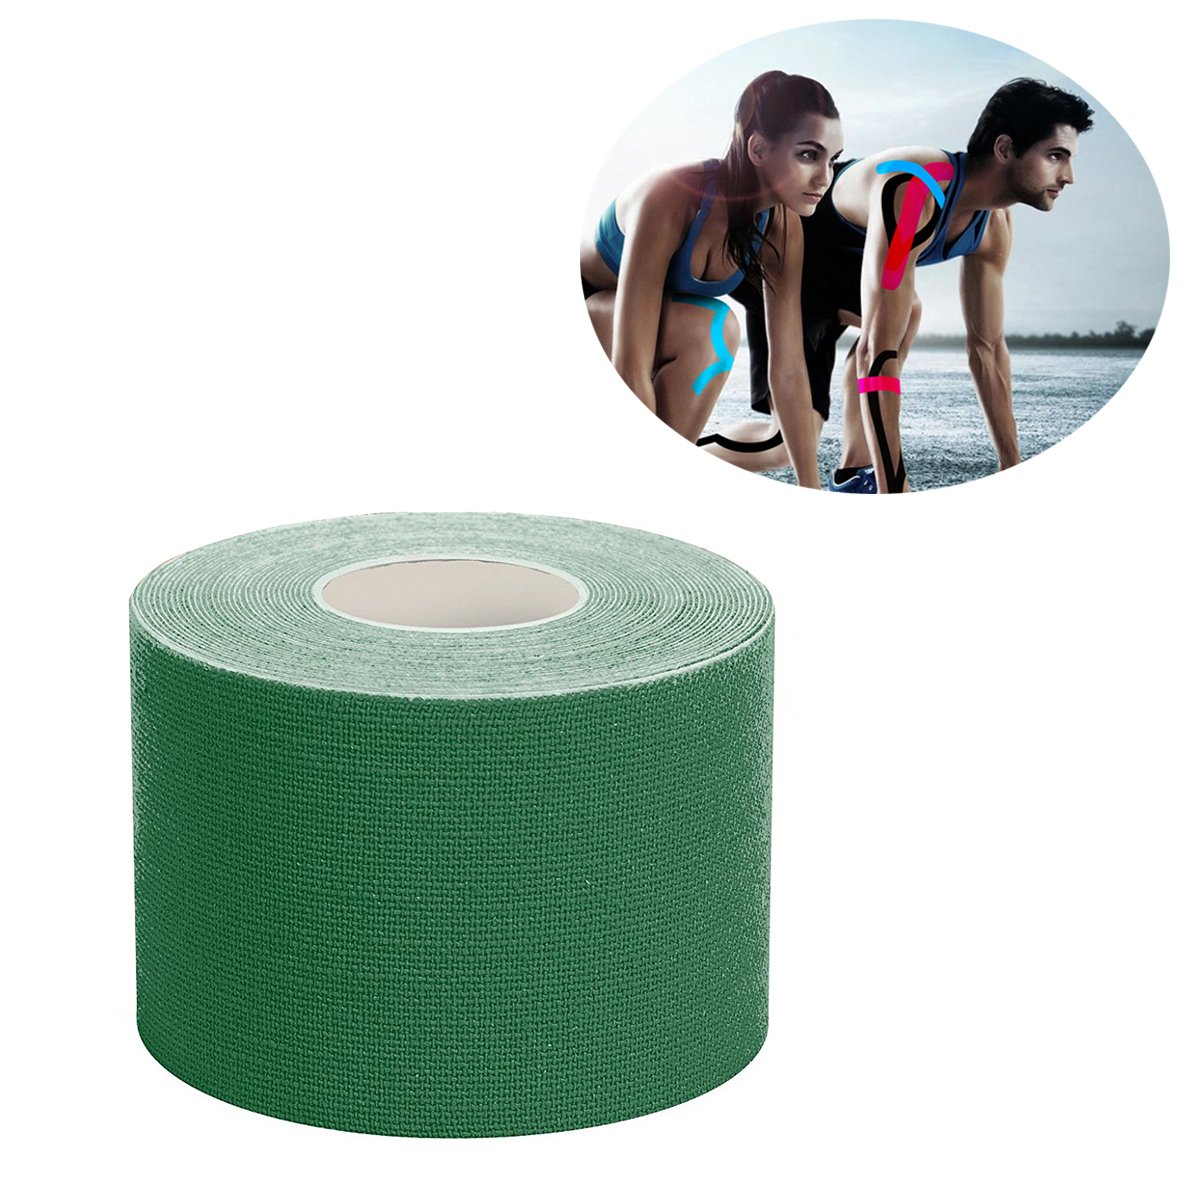 Kinesiology Tape with Free Illustrated E-Guide - 16ft Uncut Roll - Reduce Pain and Injury Recovery - 24/7 Waterproof Therapeutic Aid (Dark Green, XL)